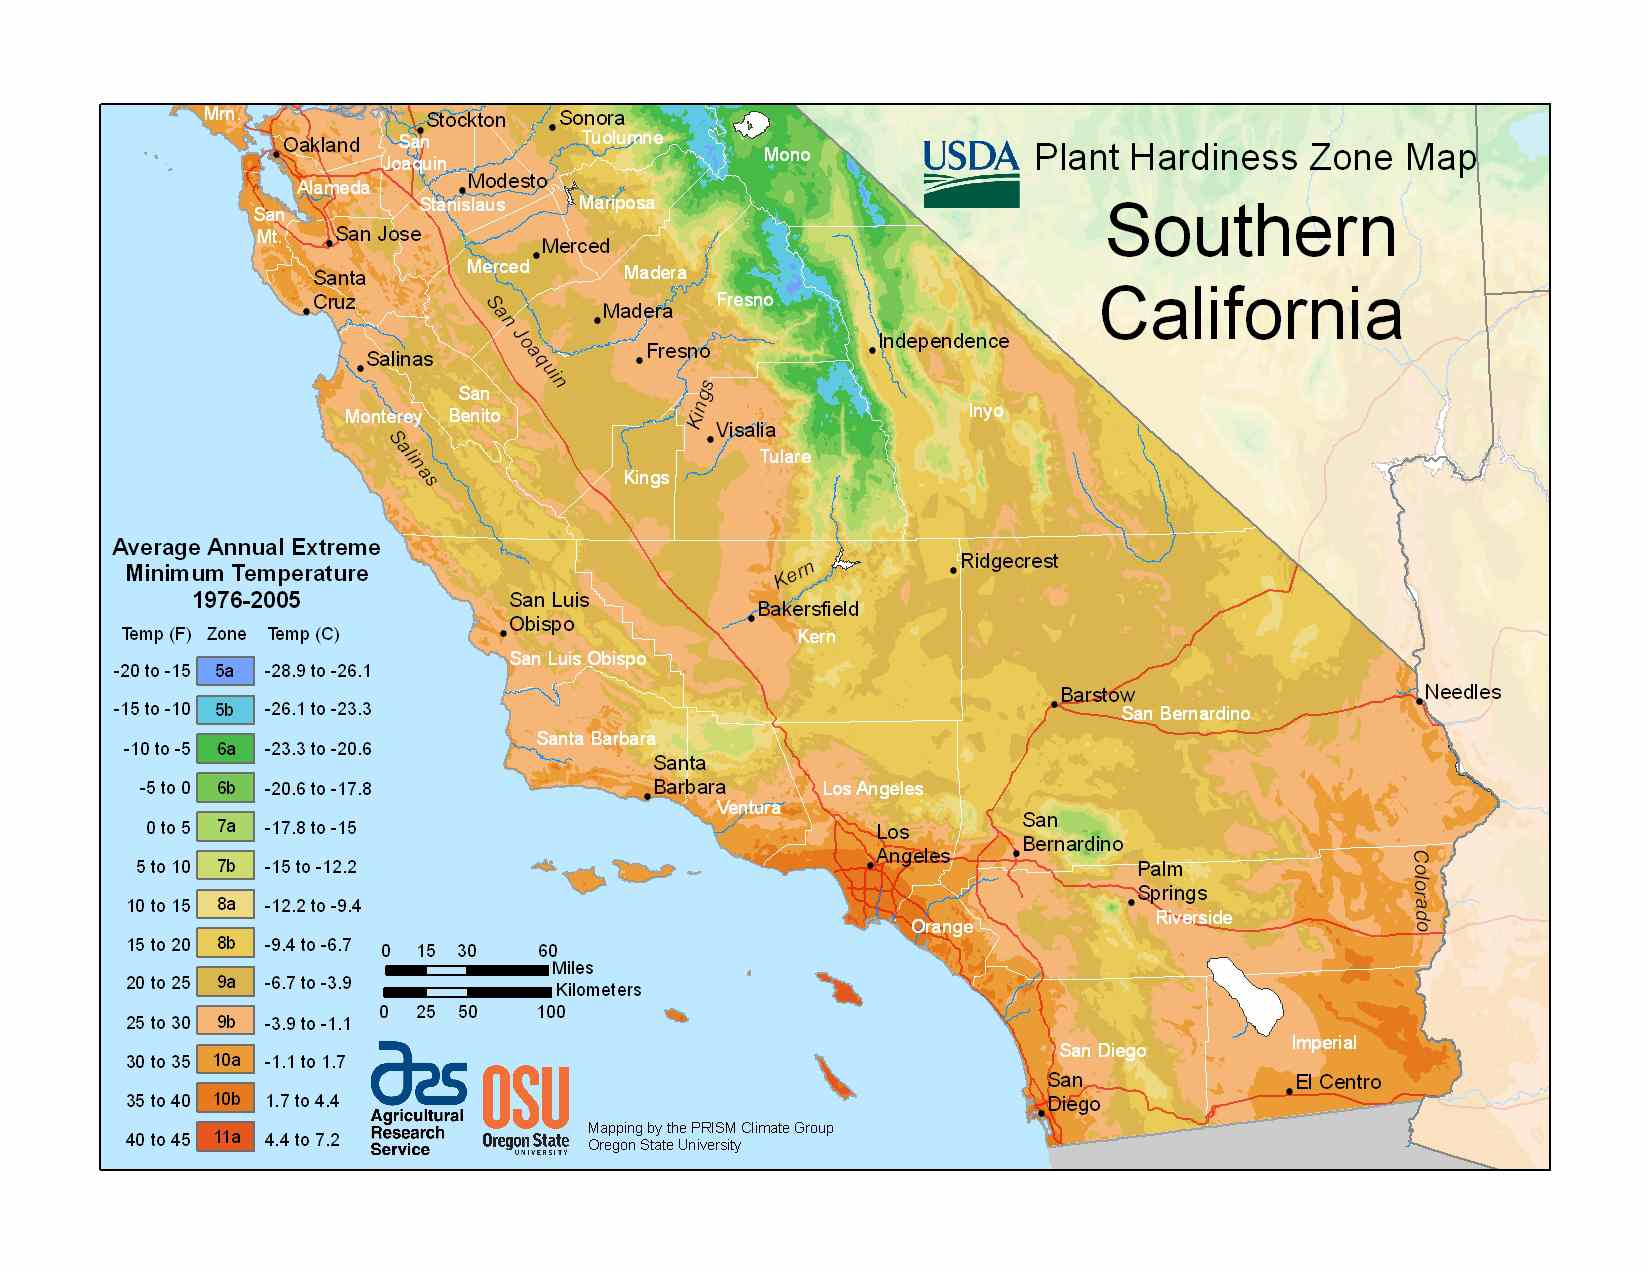 Photo of the Southern California Hardiness Zones